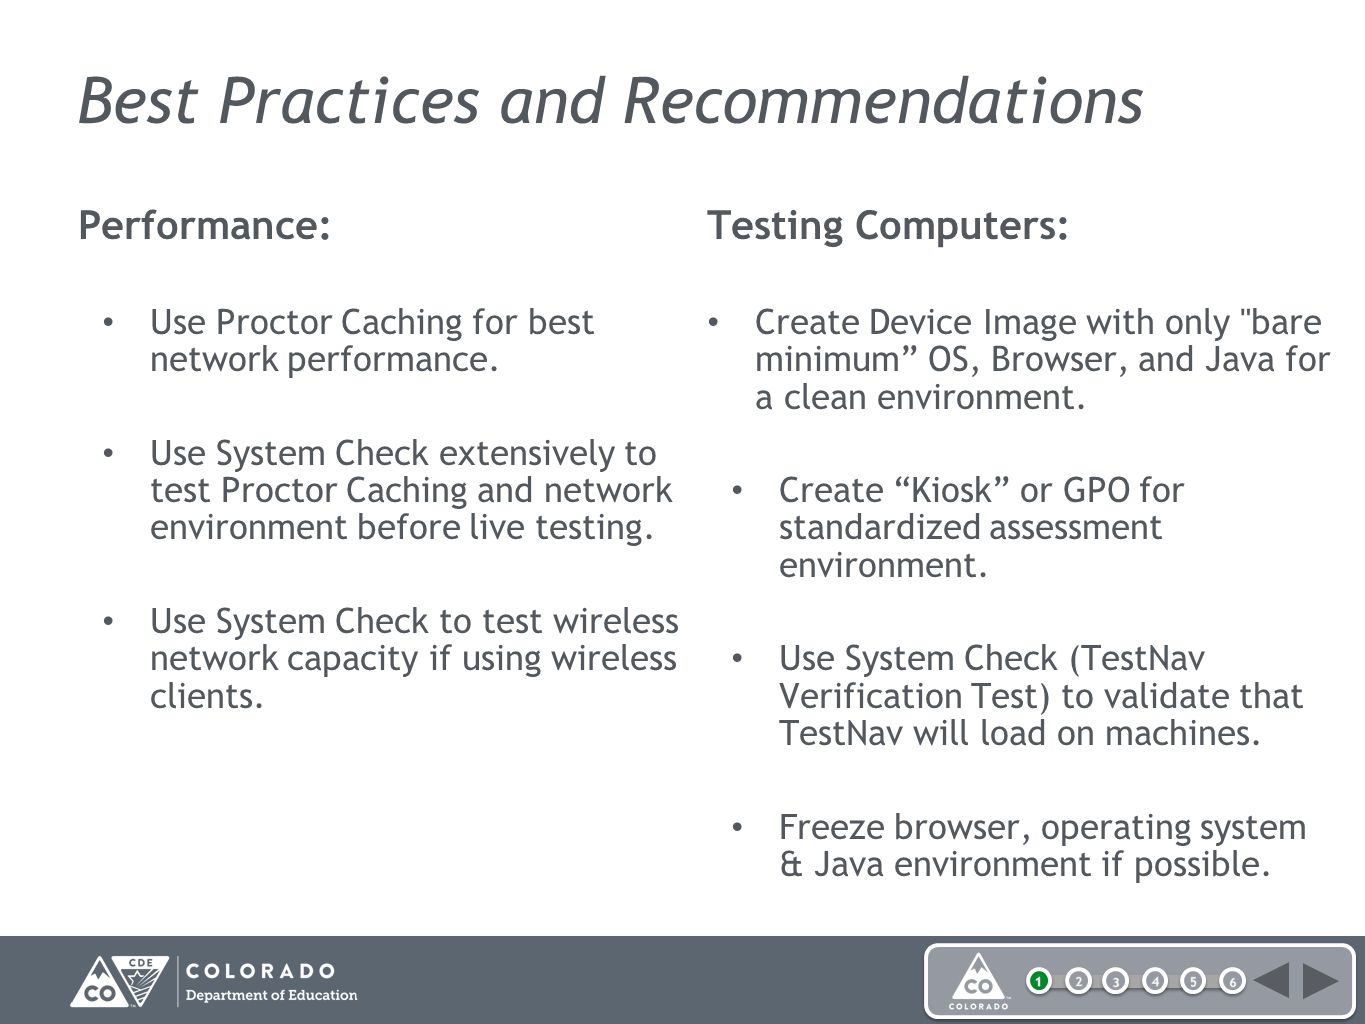 Best Practices and Recommendations Performance: Use Proctor Caching for best network performance.